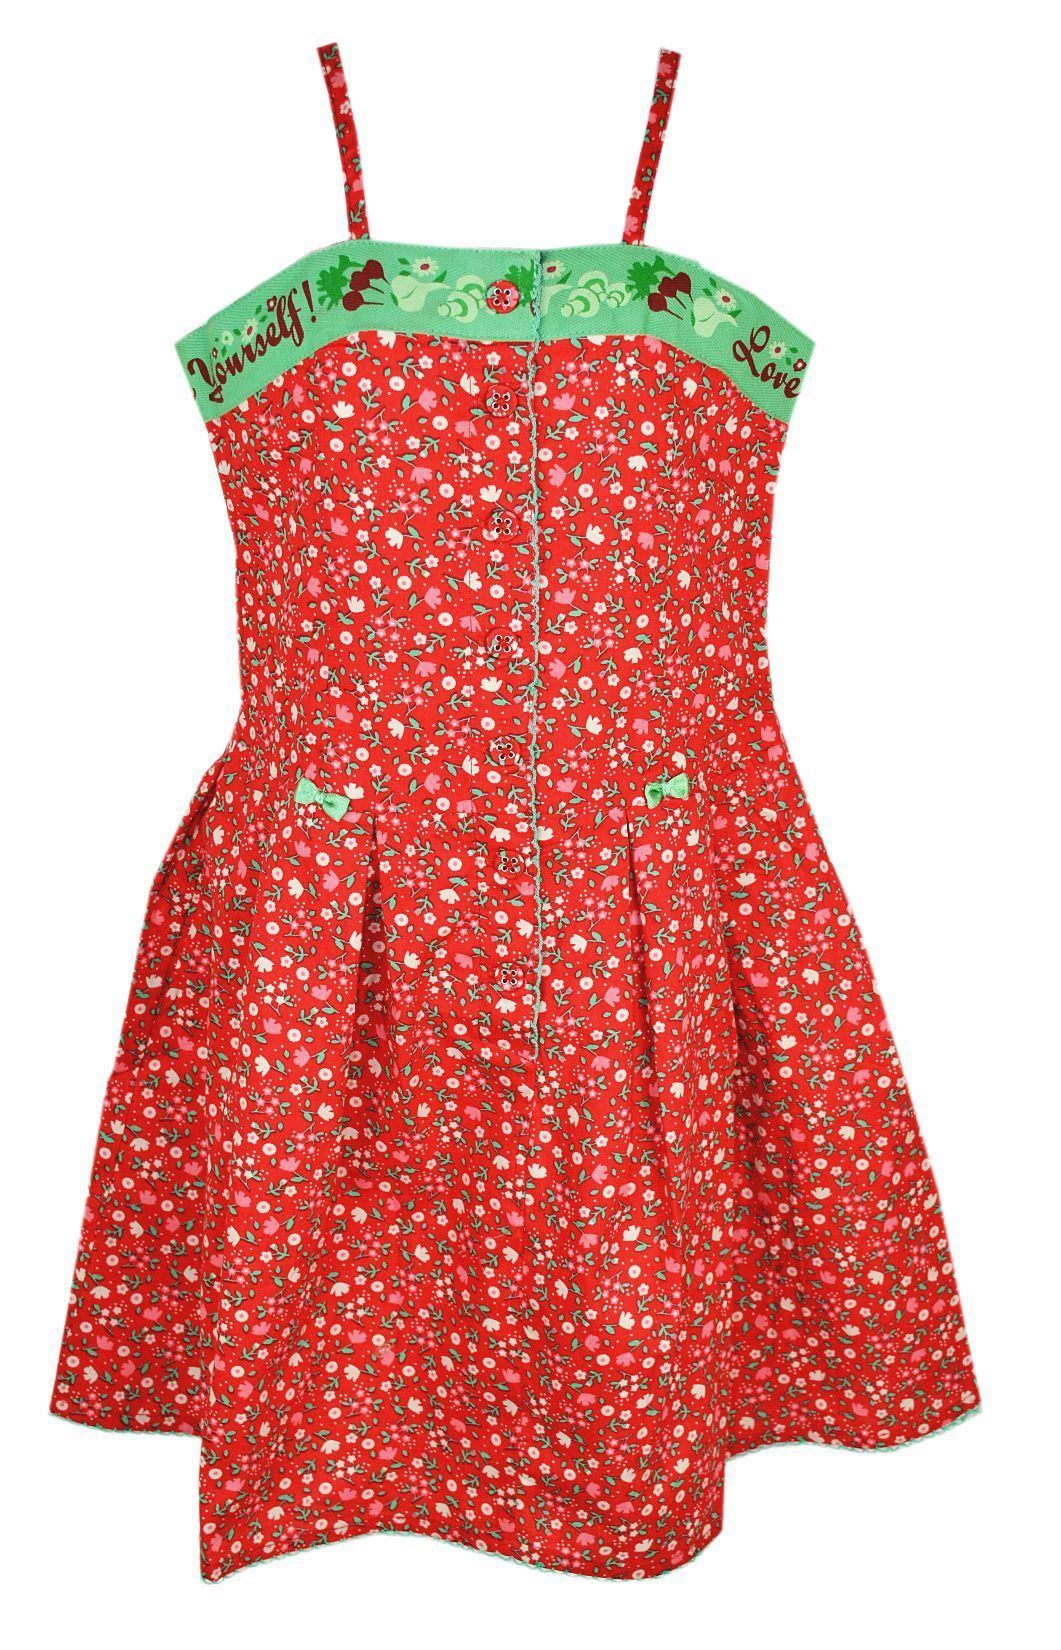 Blutsgeschwister Kleid. 134 best lar retro style images on pinterest ... f5cbf7f5b0